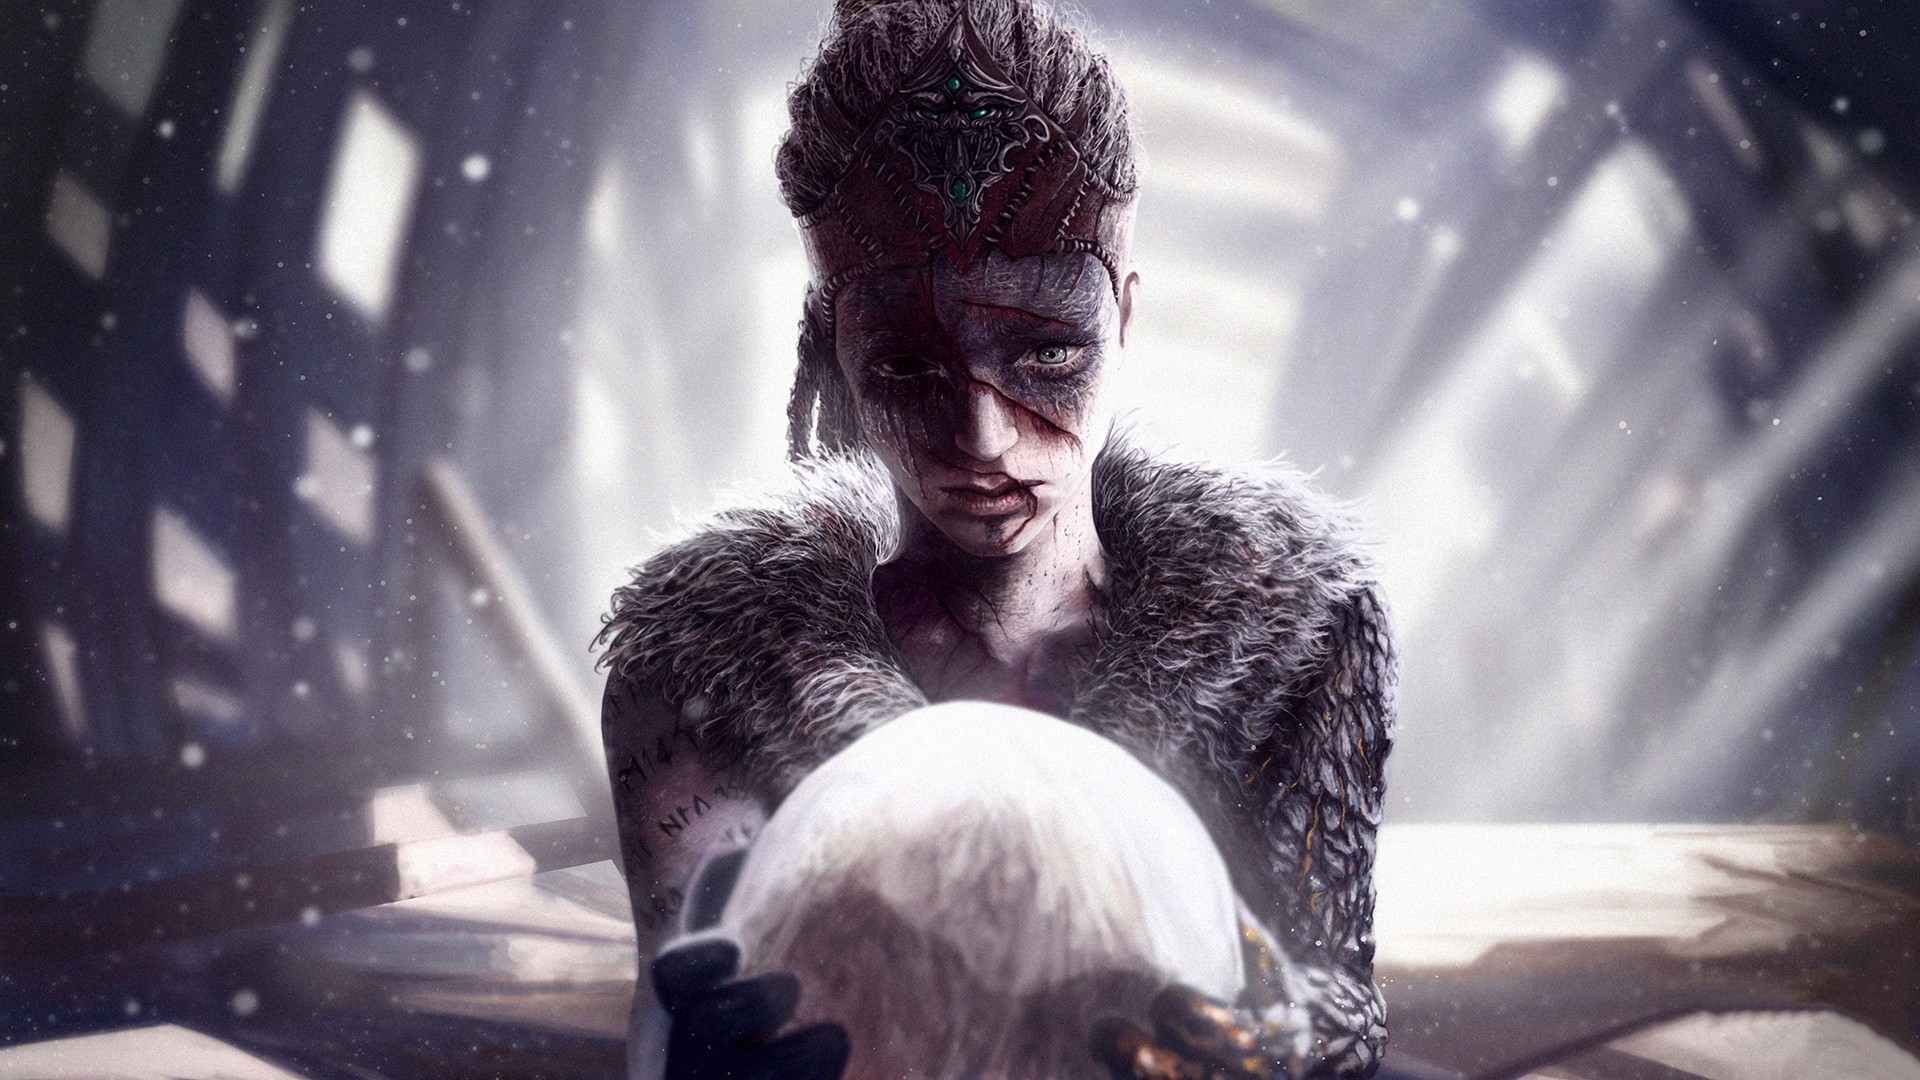 Top 10 3d Wallpapers For Android Hellblade Senuas Sacrifice Hd Wallpapers Hd Wallpapers